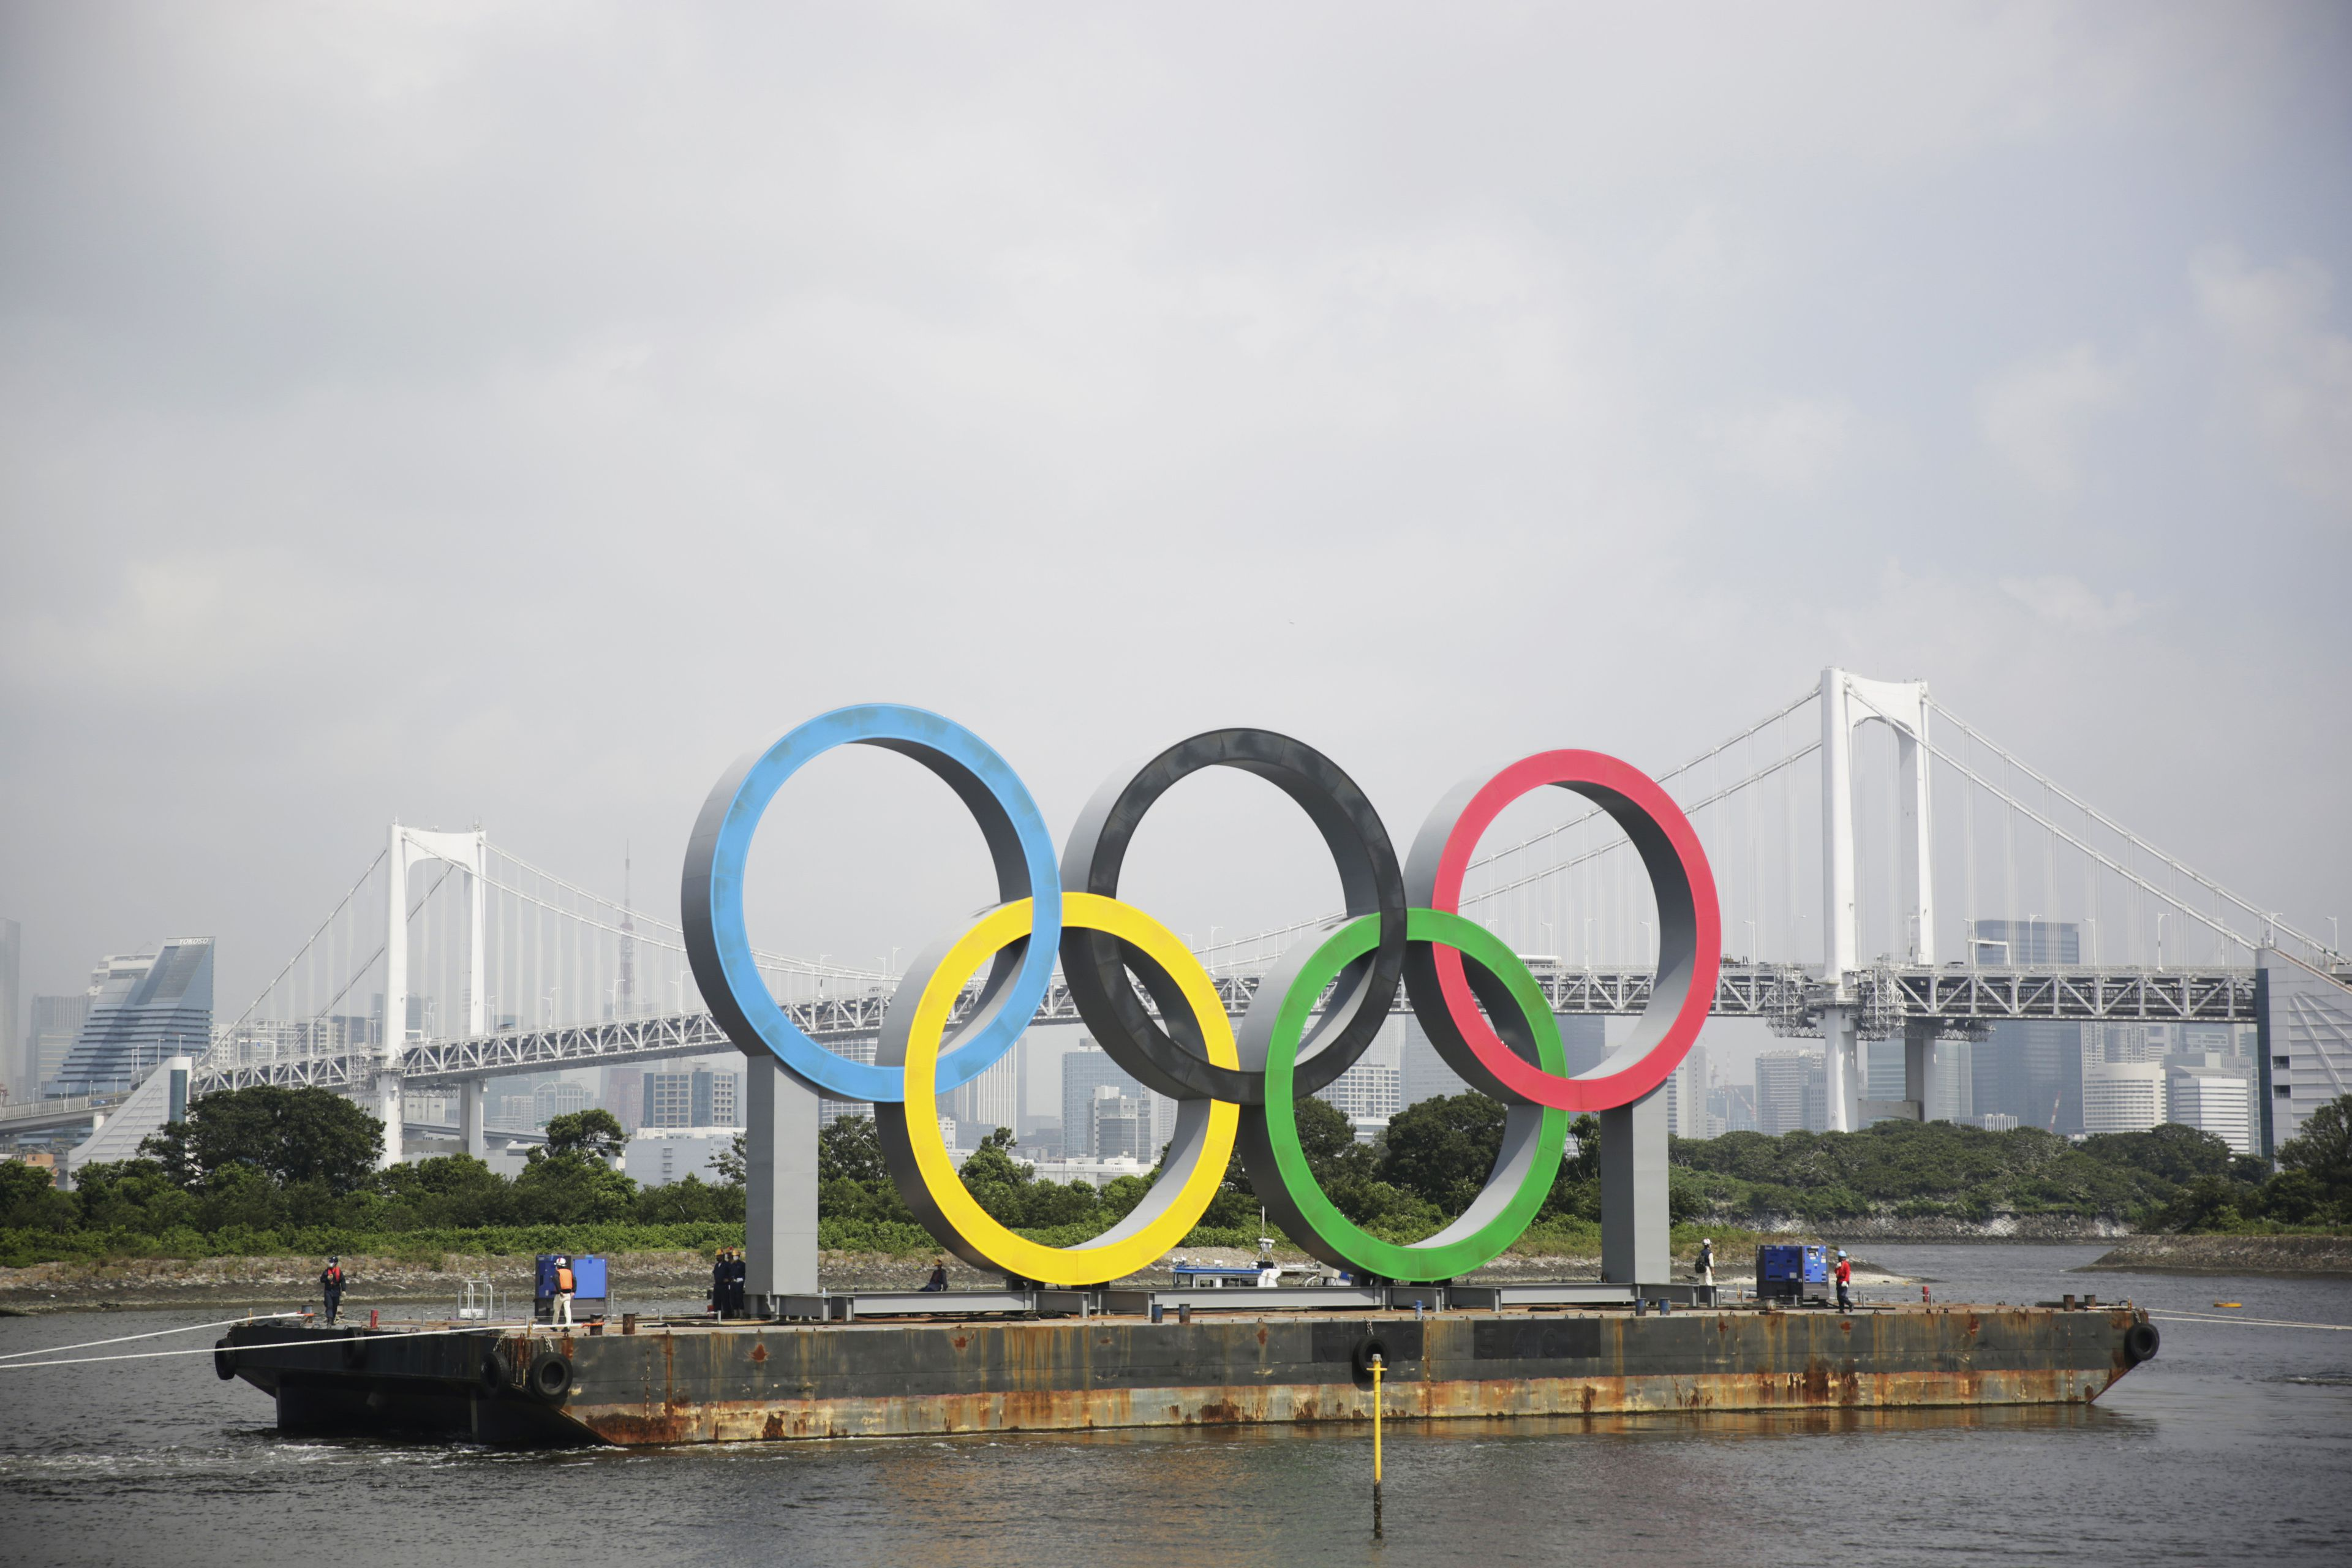 Tugboats move a symbol installed for the Olympic and Paralympic Games in Tokyo.